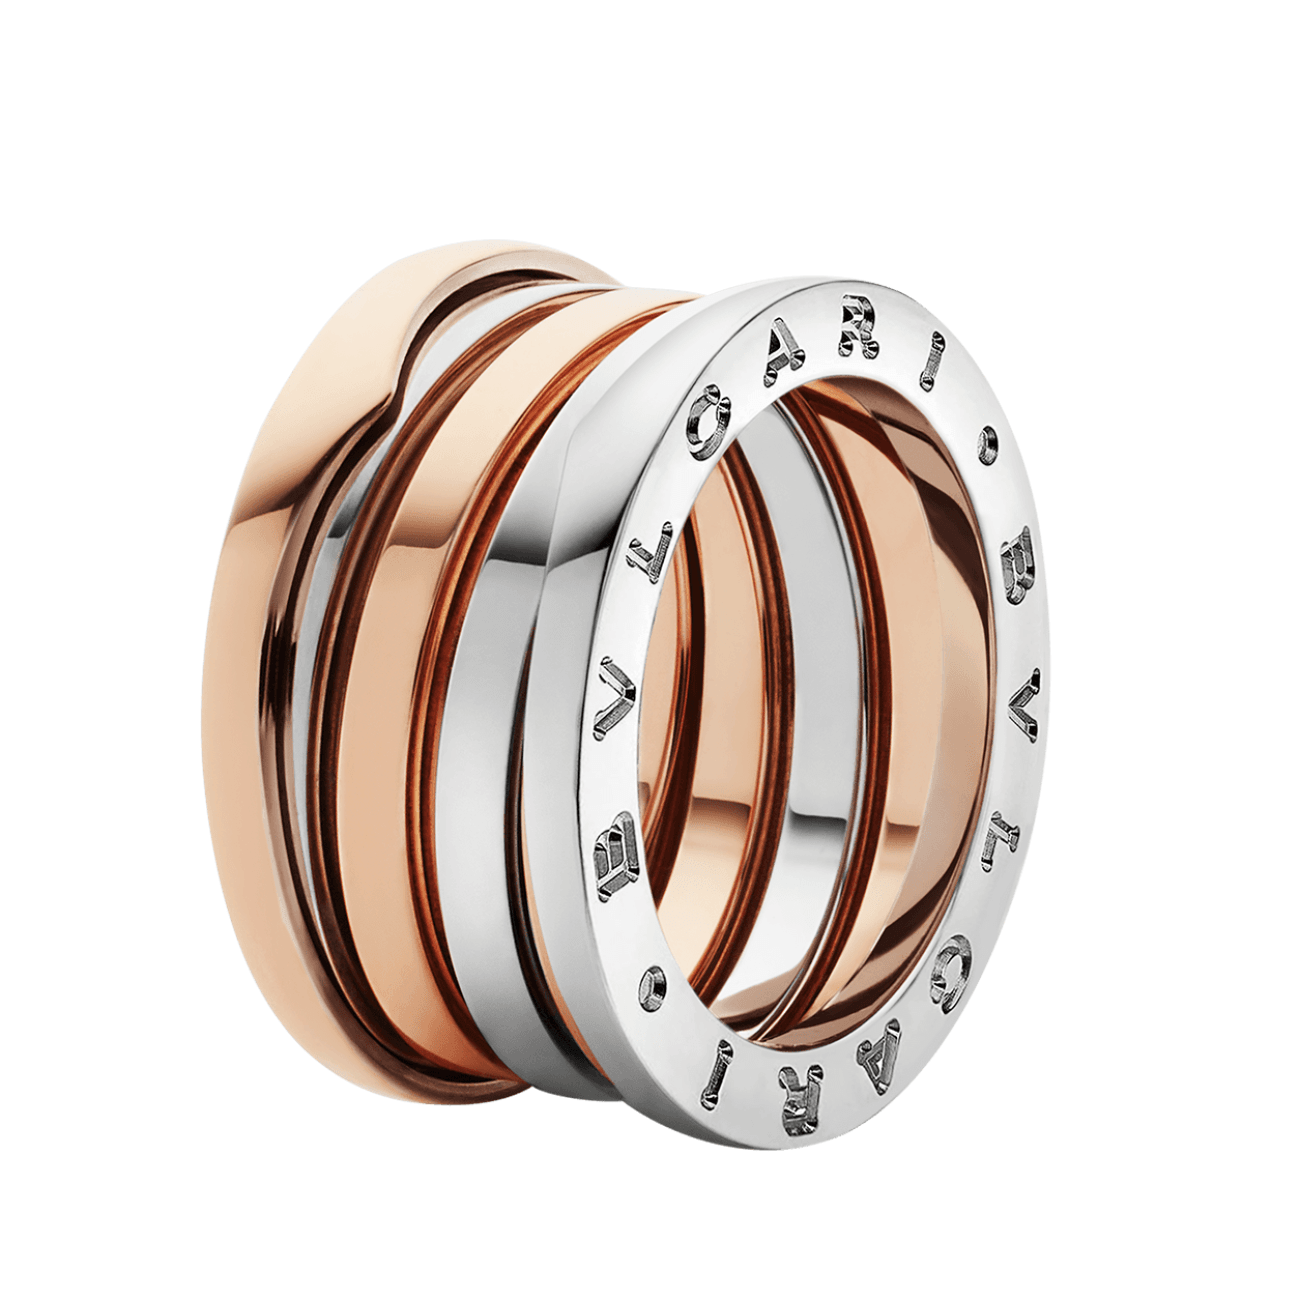 Bvlgari Jewelry - B.zero1 Ring | Manfredi Jewels